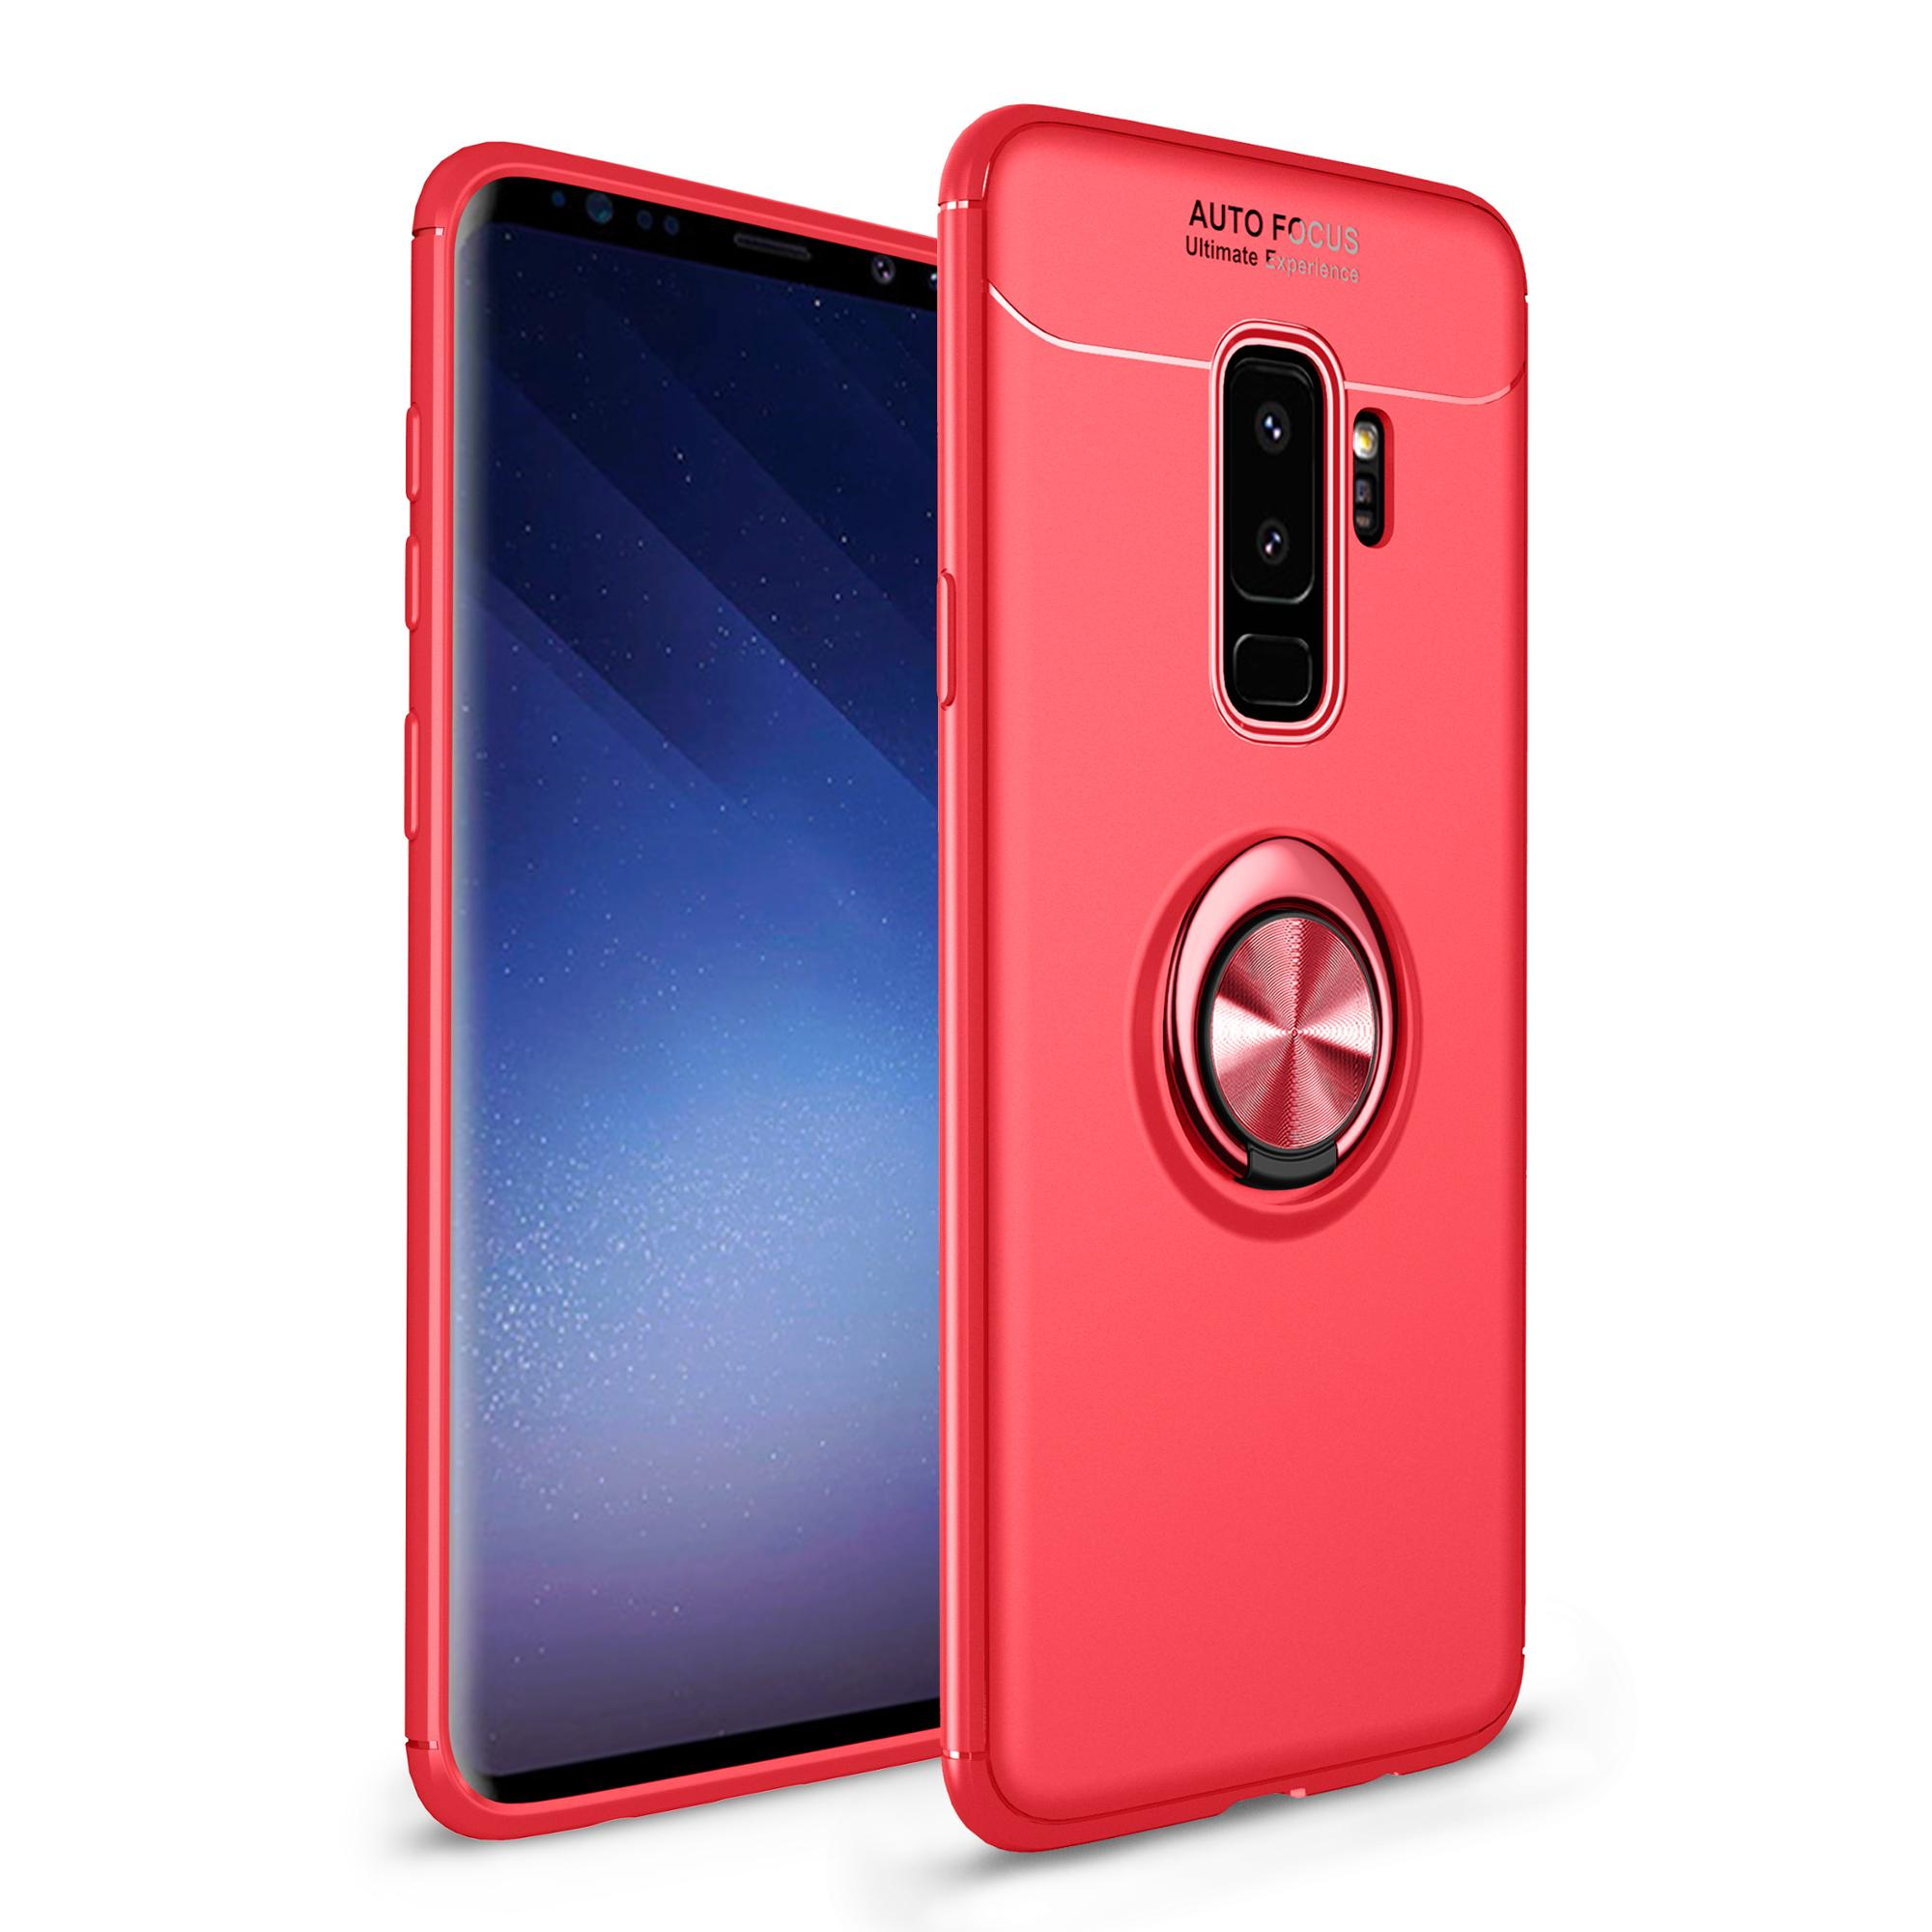 2018 NEW Factory Shockproof PC + TPU Auto Focus Phone Case with Magnetic for Samsung S9